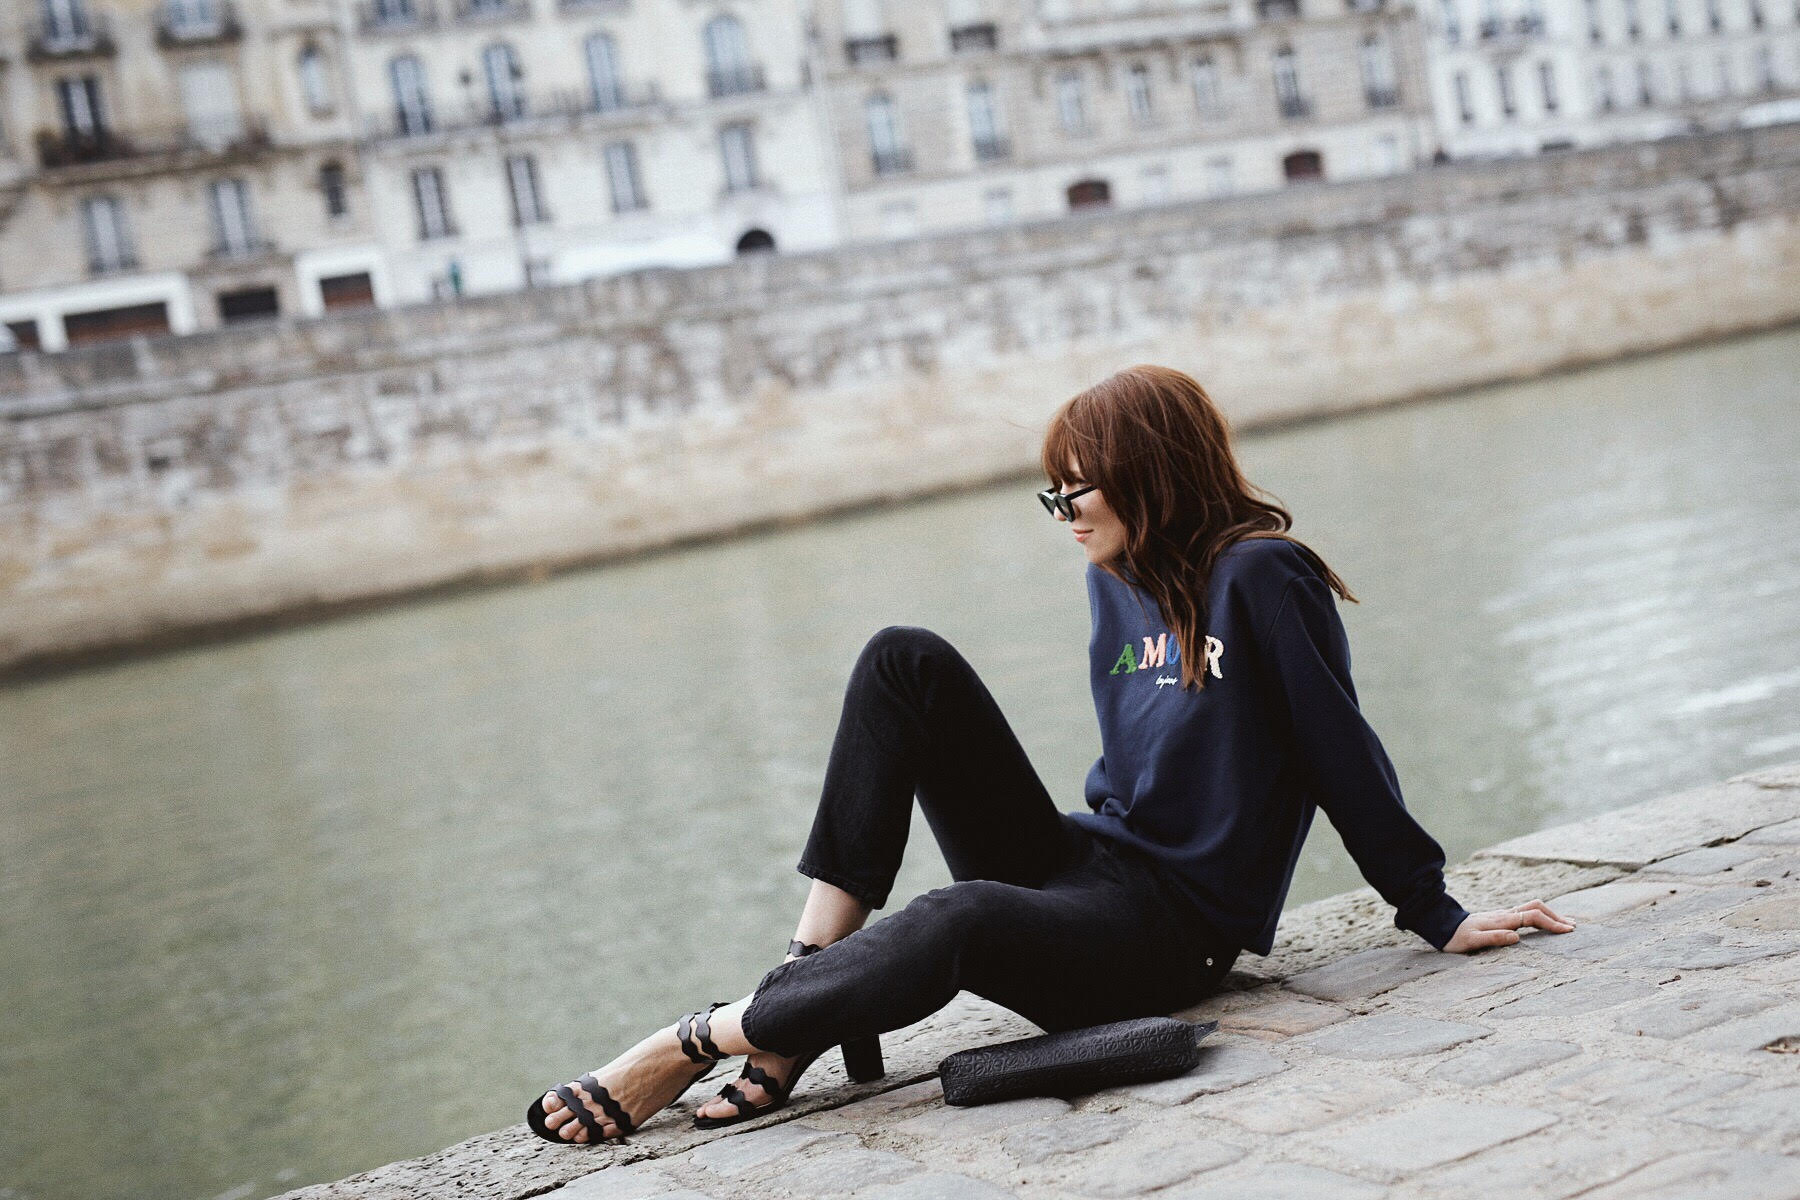 outfit paris other stories paris amour toujours sweater mint&berry sandals rouje jeans lesfillesenrouje catsanddogsblog ricarda schernus max bechmann fotografie film 3